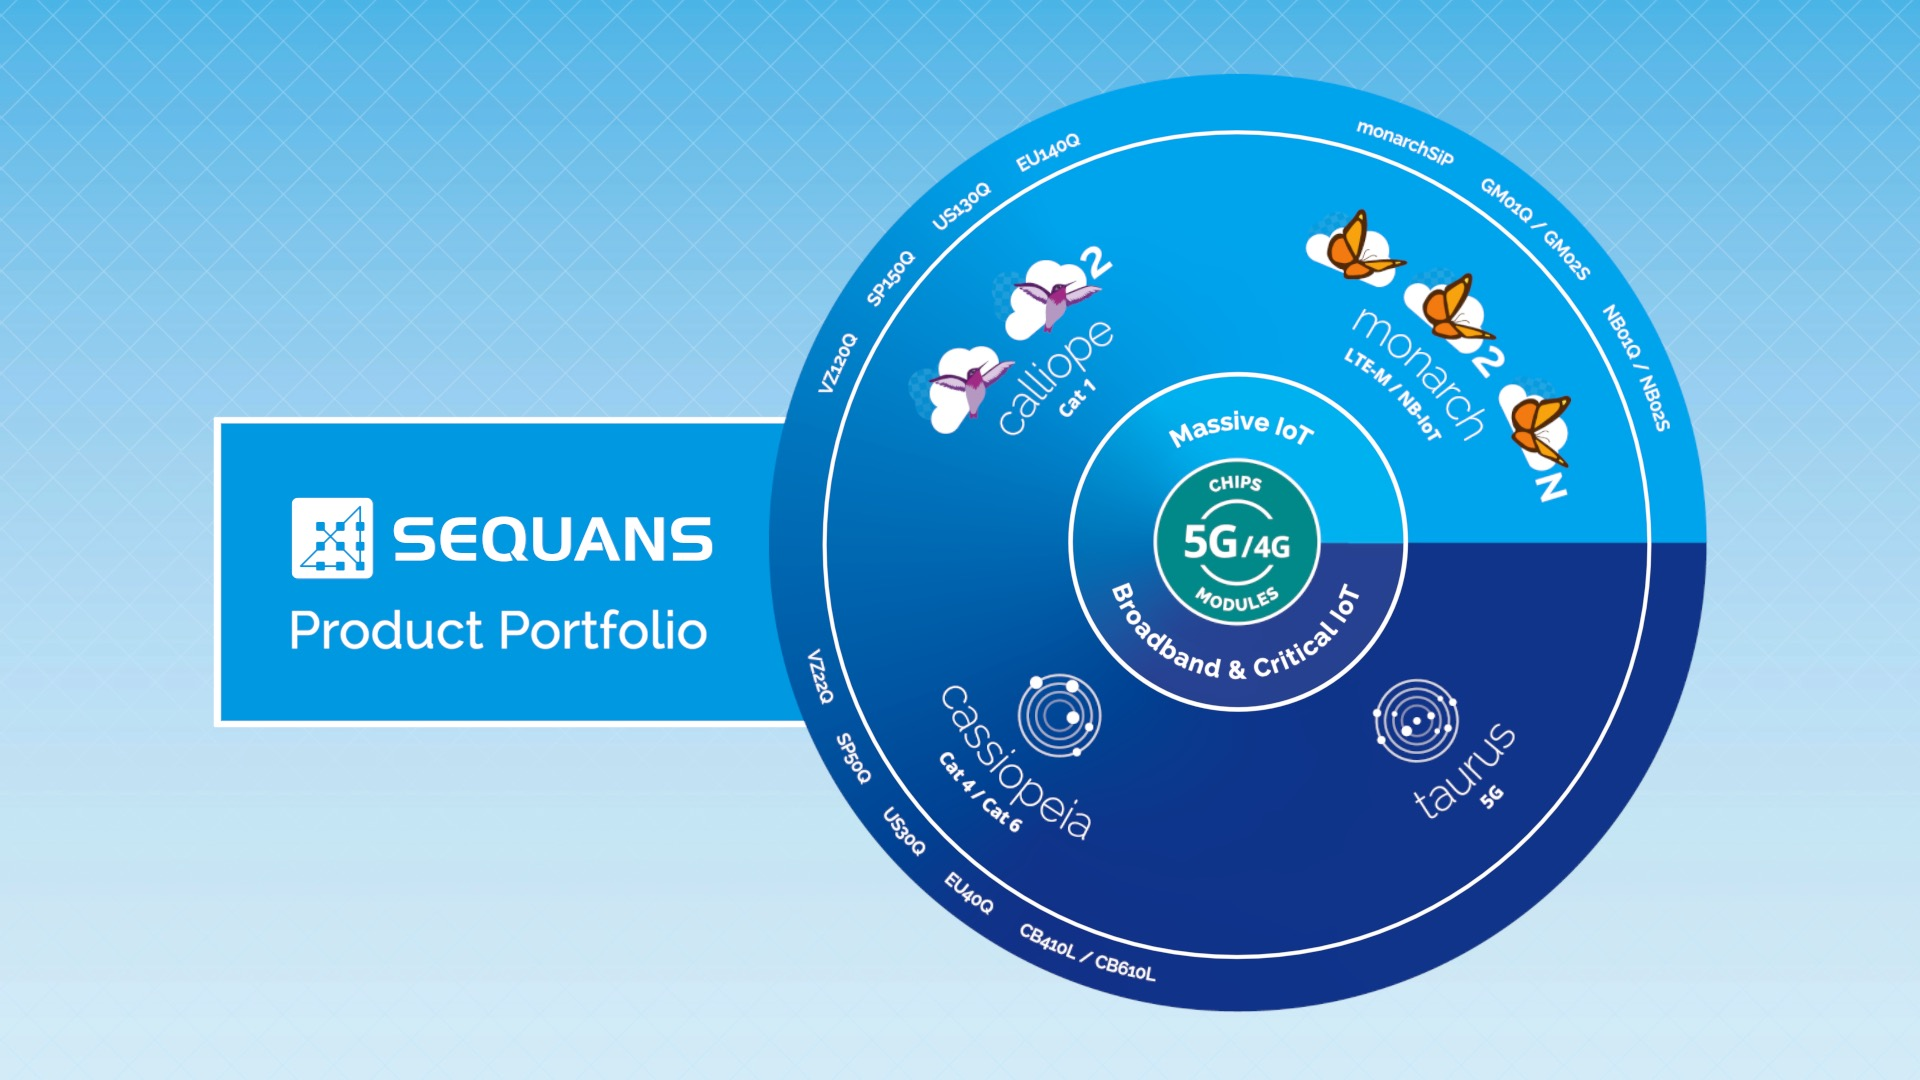 Sequans 5G/4G Product Portfolio